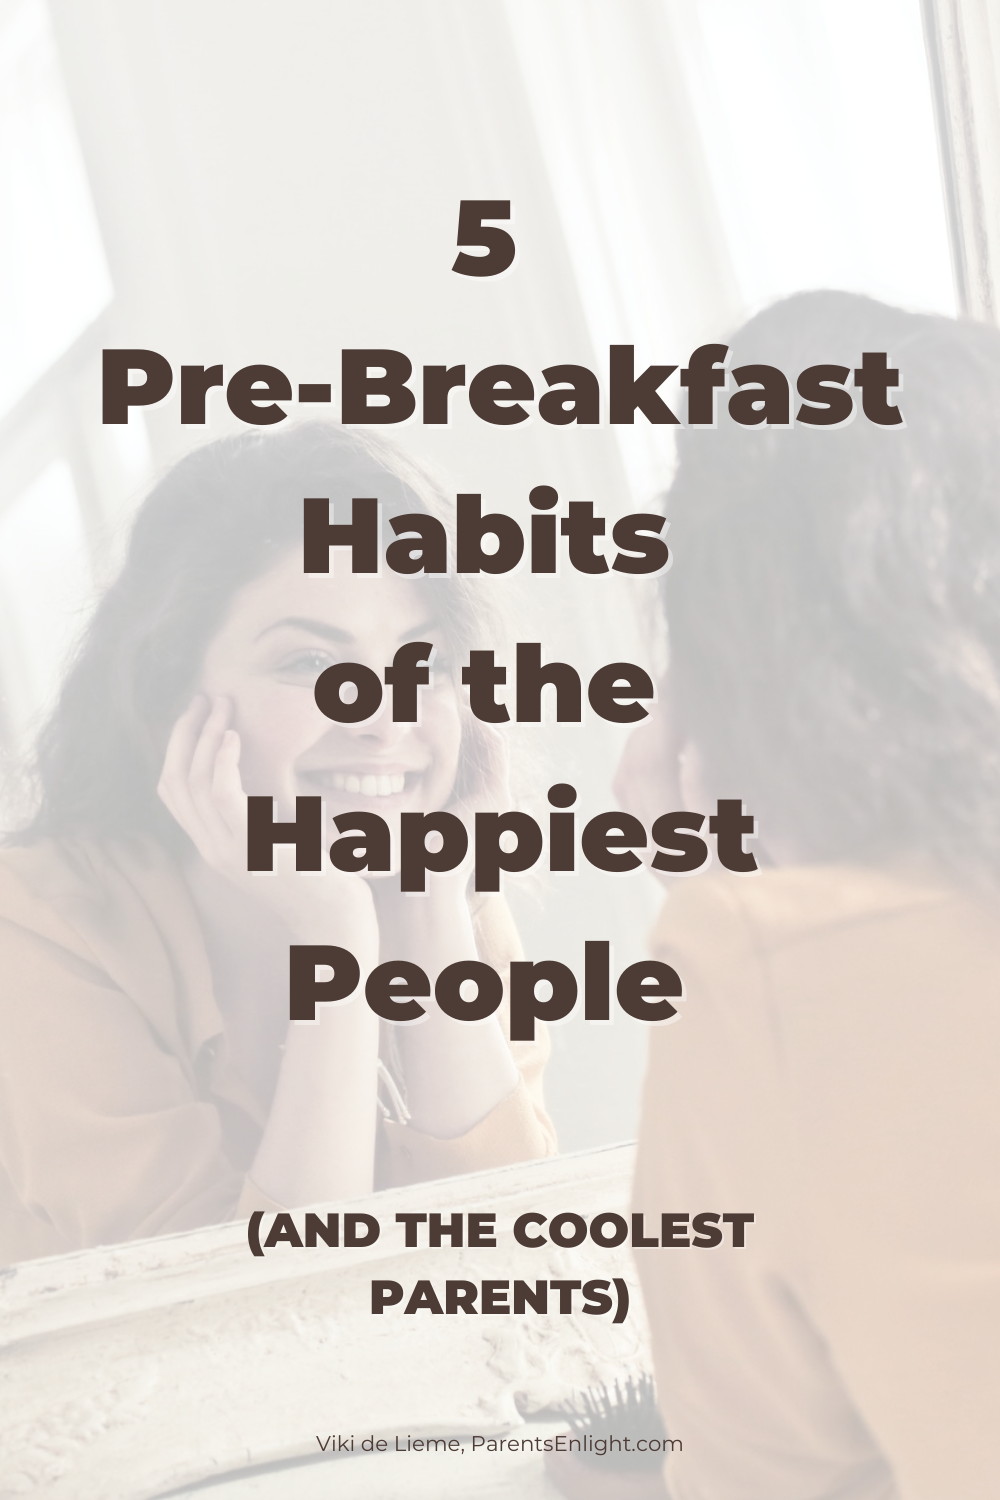 Finding it super hard to not get upset in the morning? Had enough of the morning-craze that leads to a hectic day? These 5 small habits allow you to start you day at peace and help you cultivate peace in family life #parenting #mindfulness #angermanagement #morningroutine #self-care #self-careroutine #motherhood #mindfulparenting #happiness #happyparenting #happypeople #betterparent #bettermother #howtobecomeacalmparent